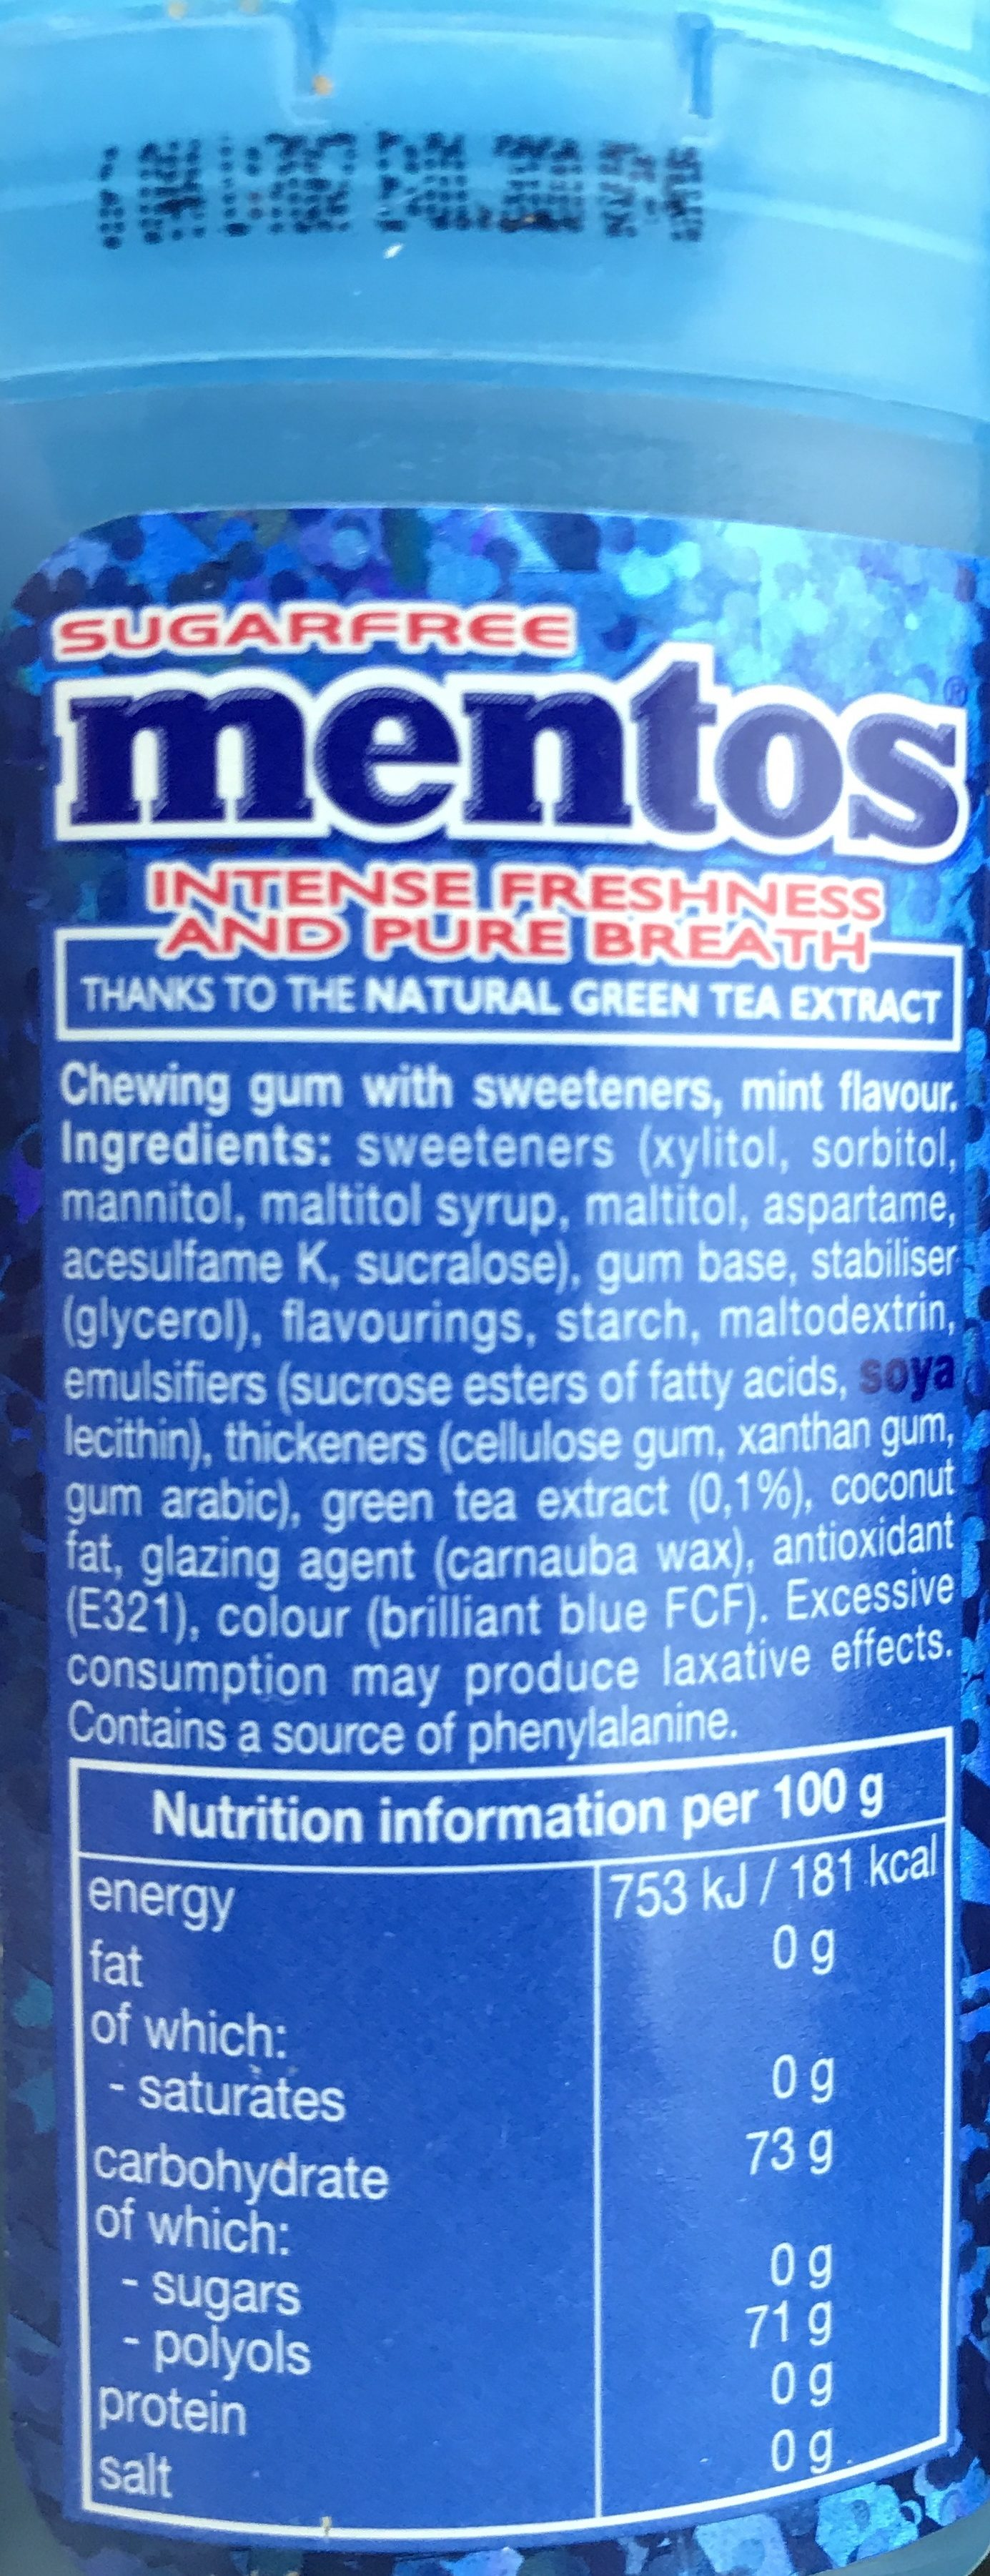 ingredients_fr.4.full.jpg